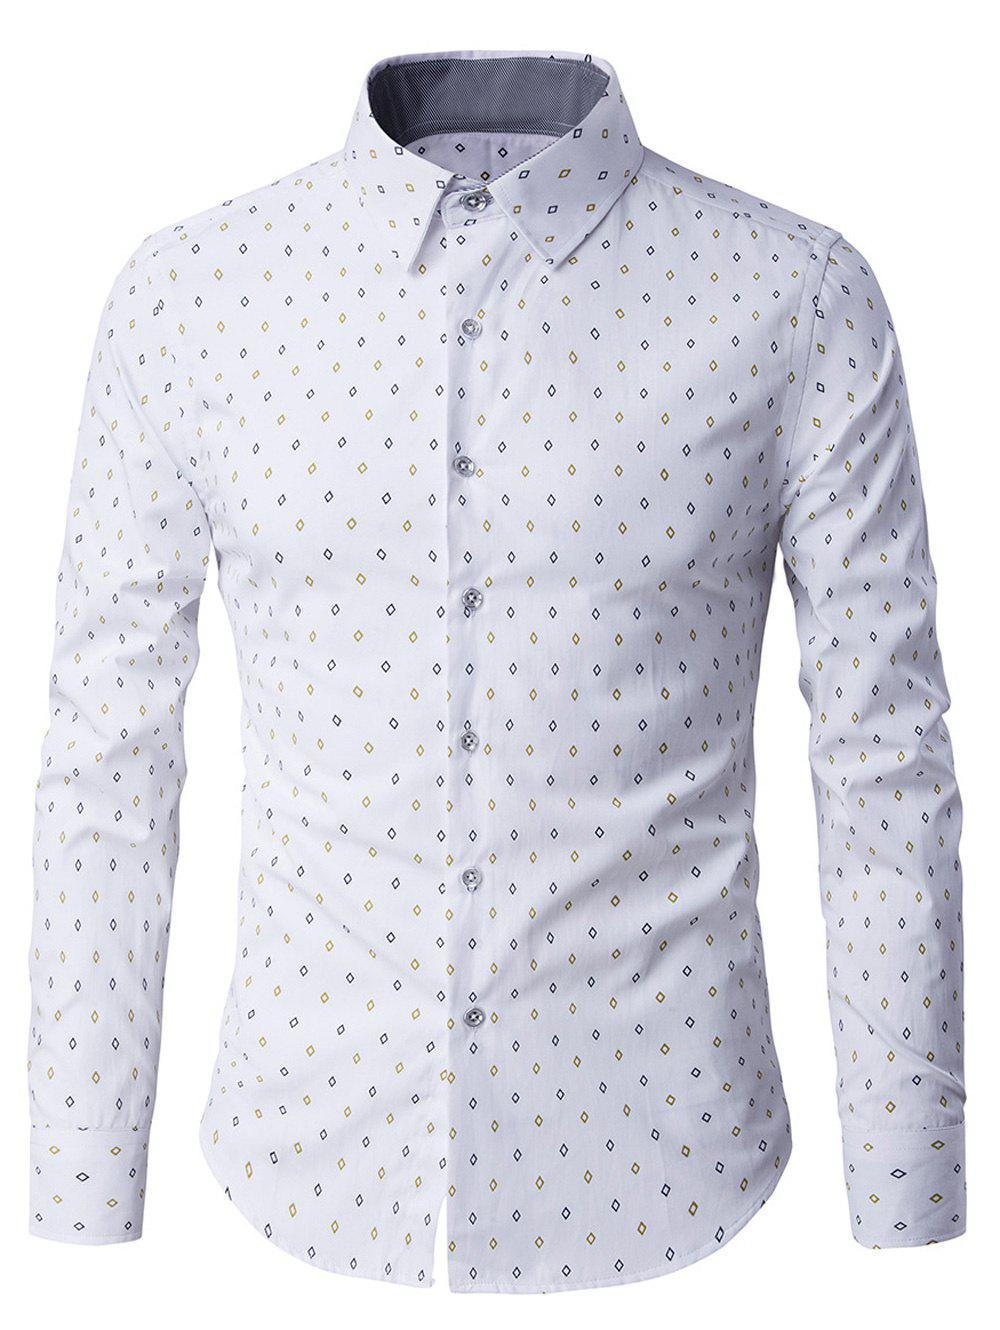 Geometric Print Turn Down Collar Long Sleeve Men's Shirt - WHITE M